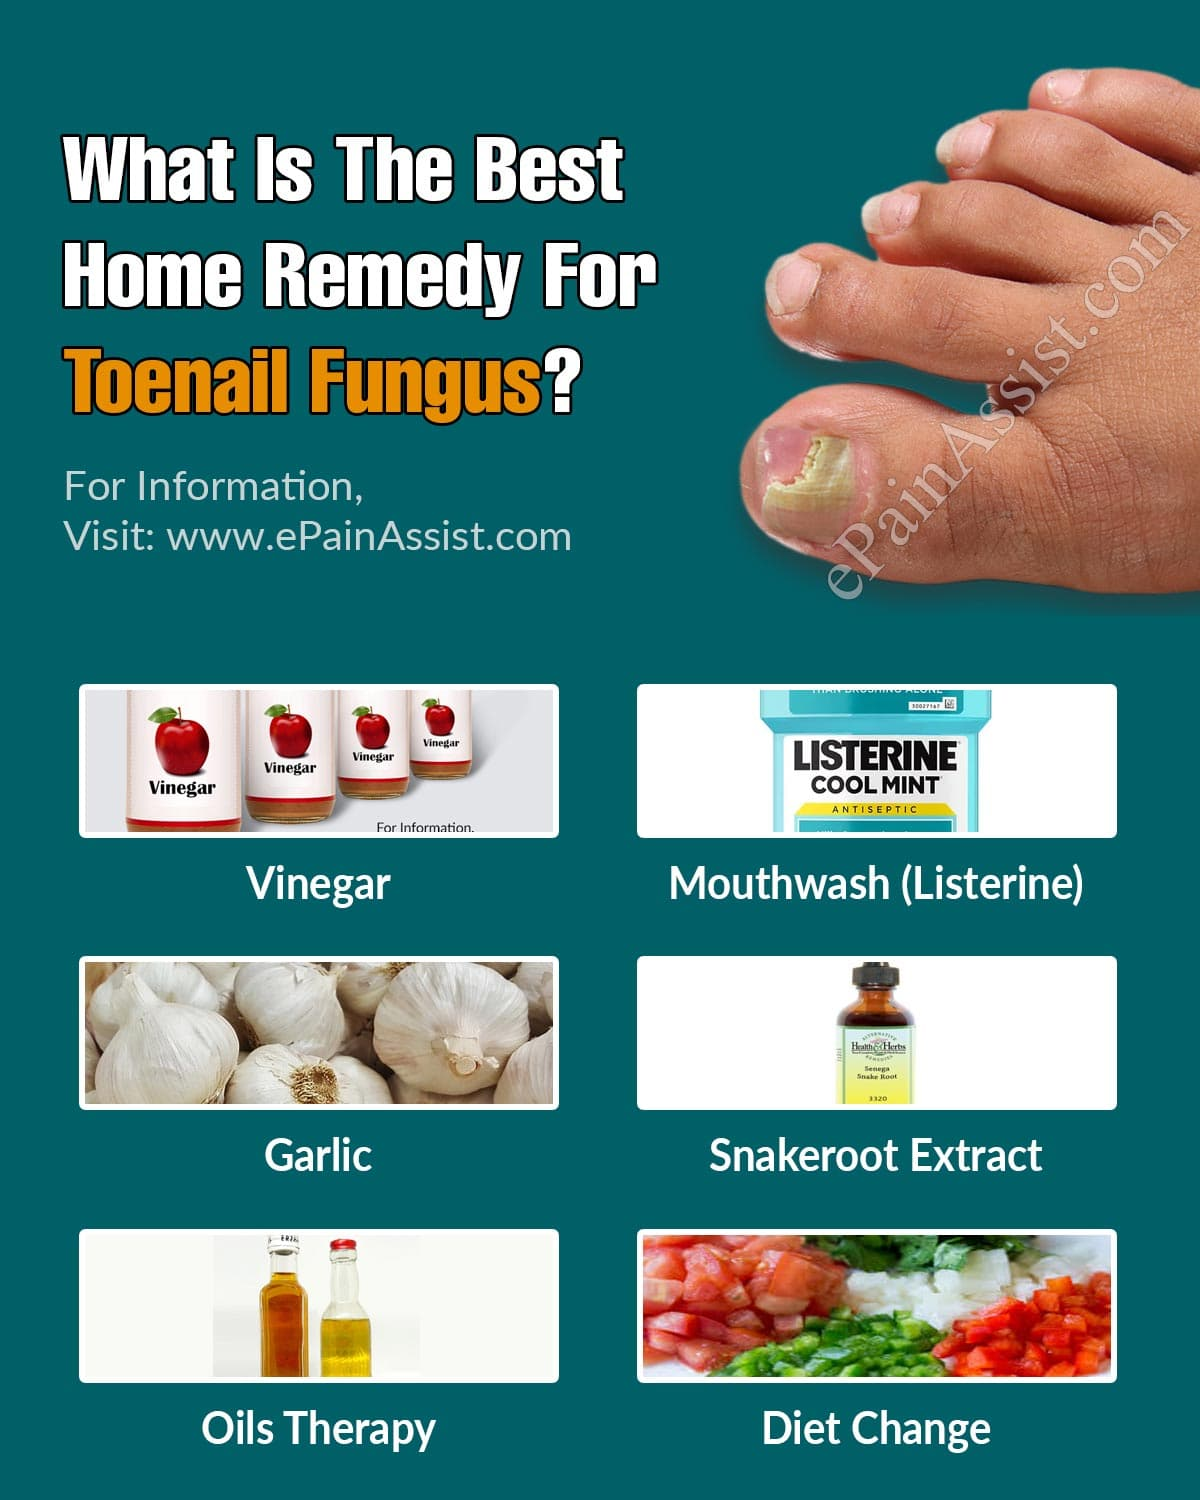 What Is The Best Home Remedy For Toenail Fungus?